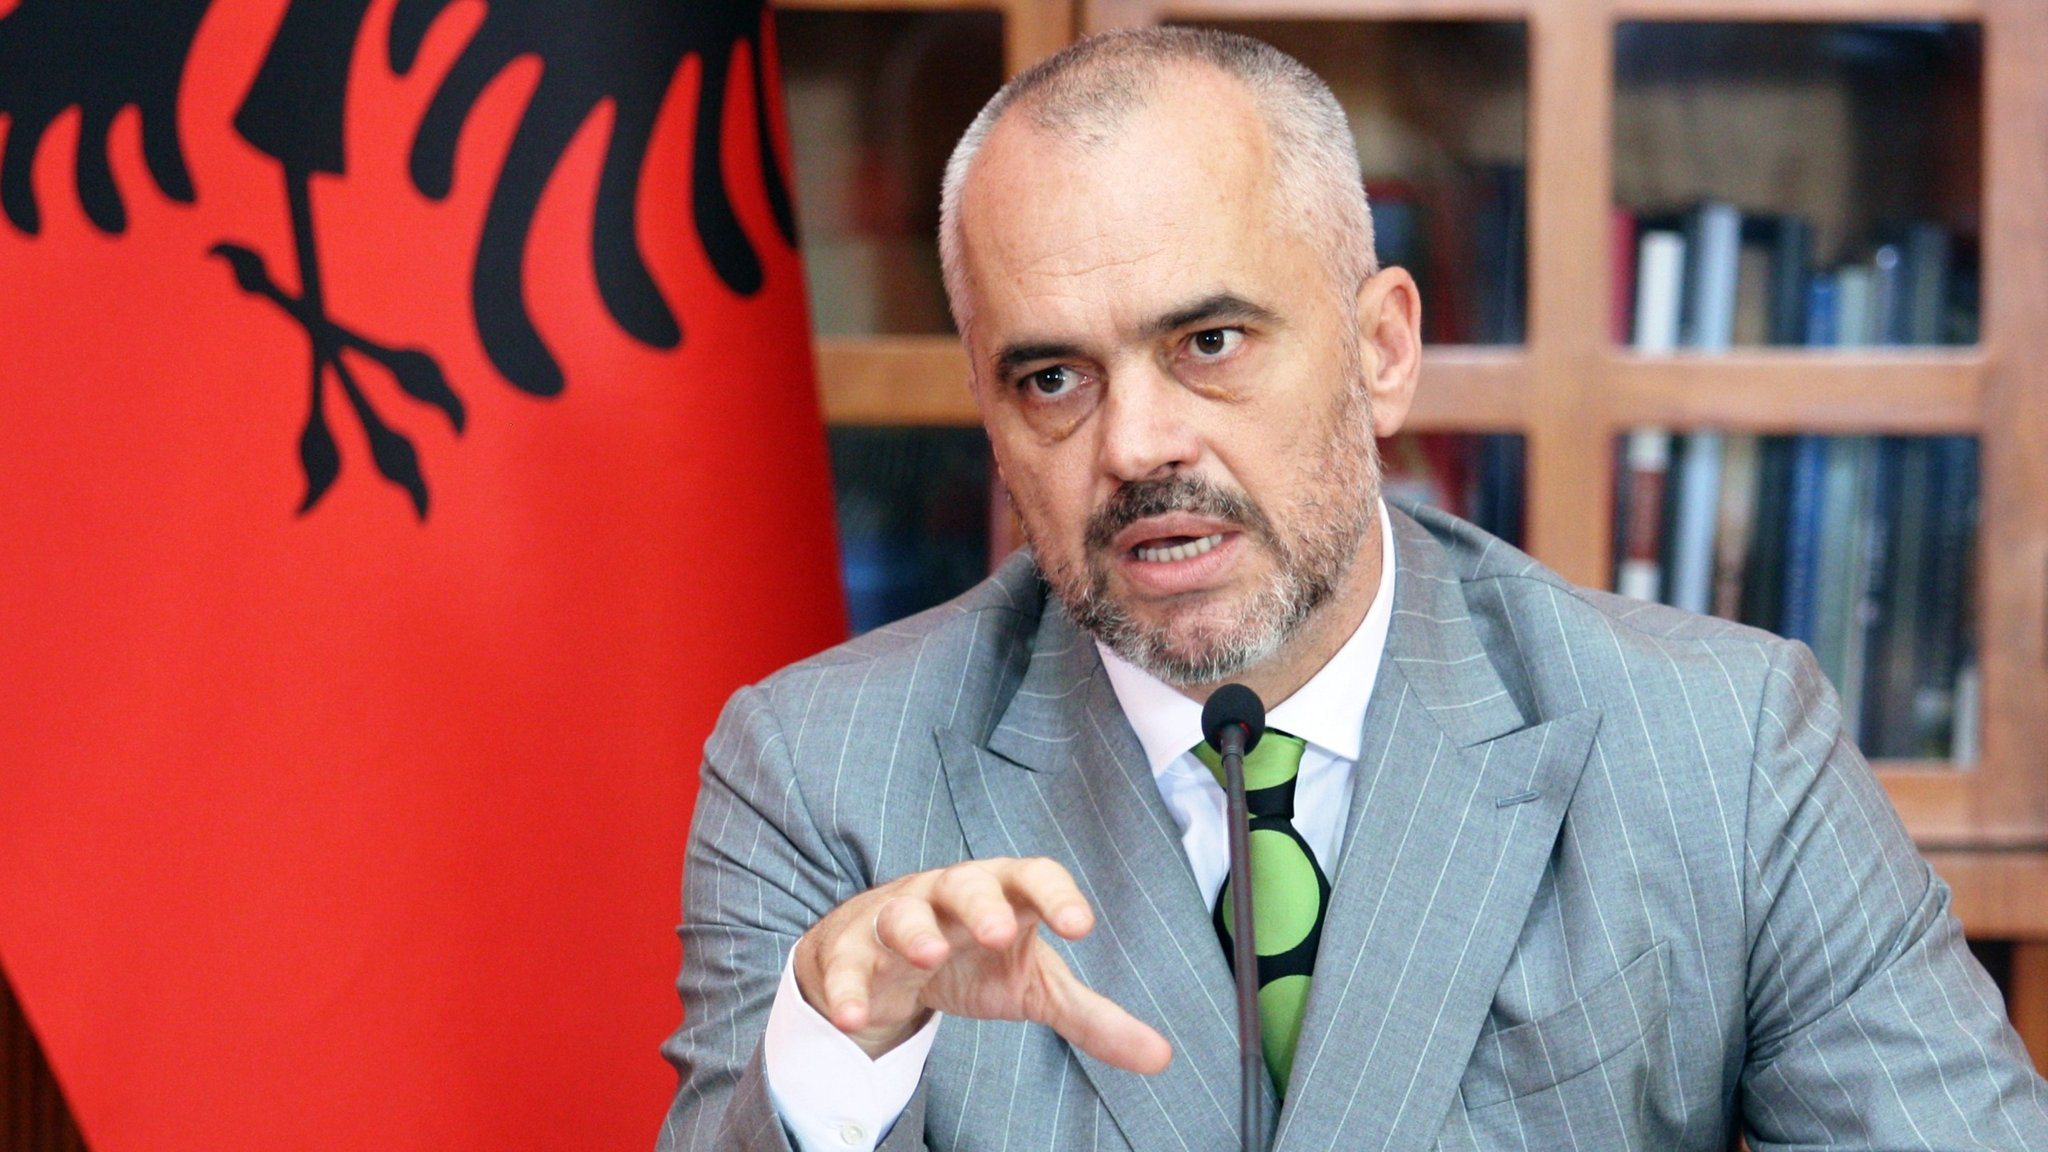 Albania's Rama comments judicial reform